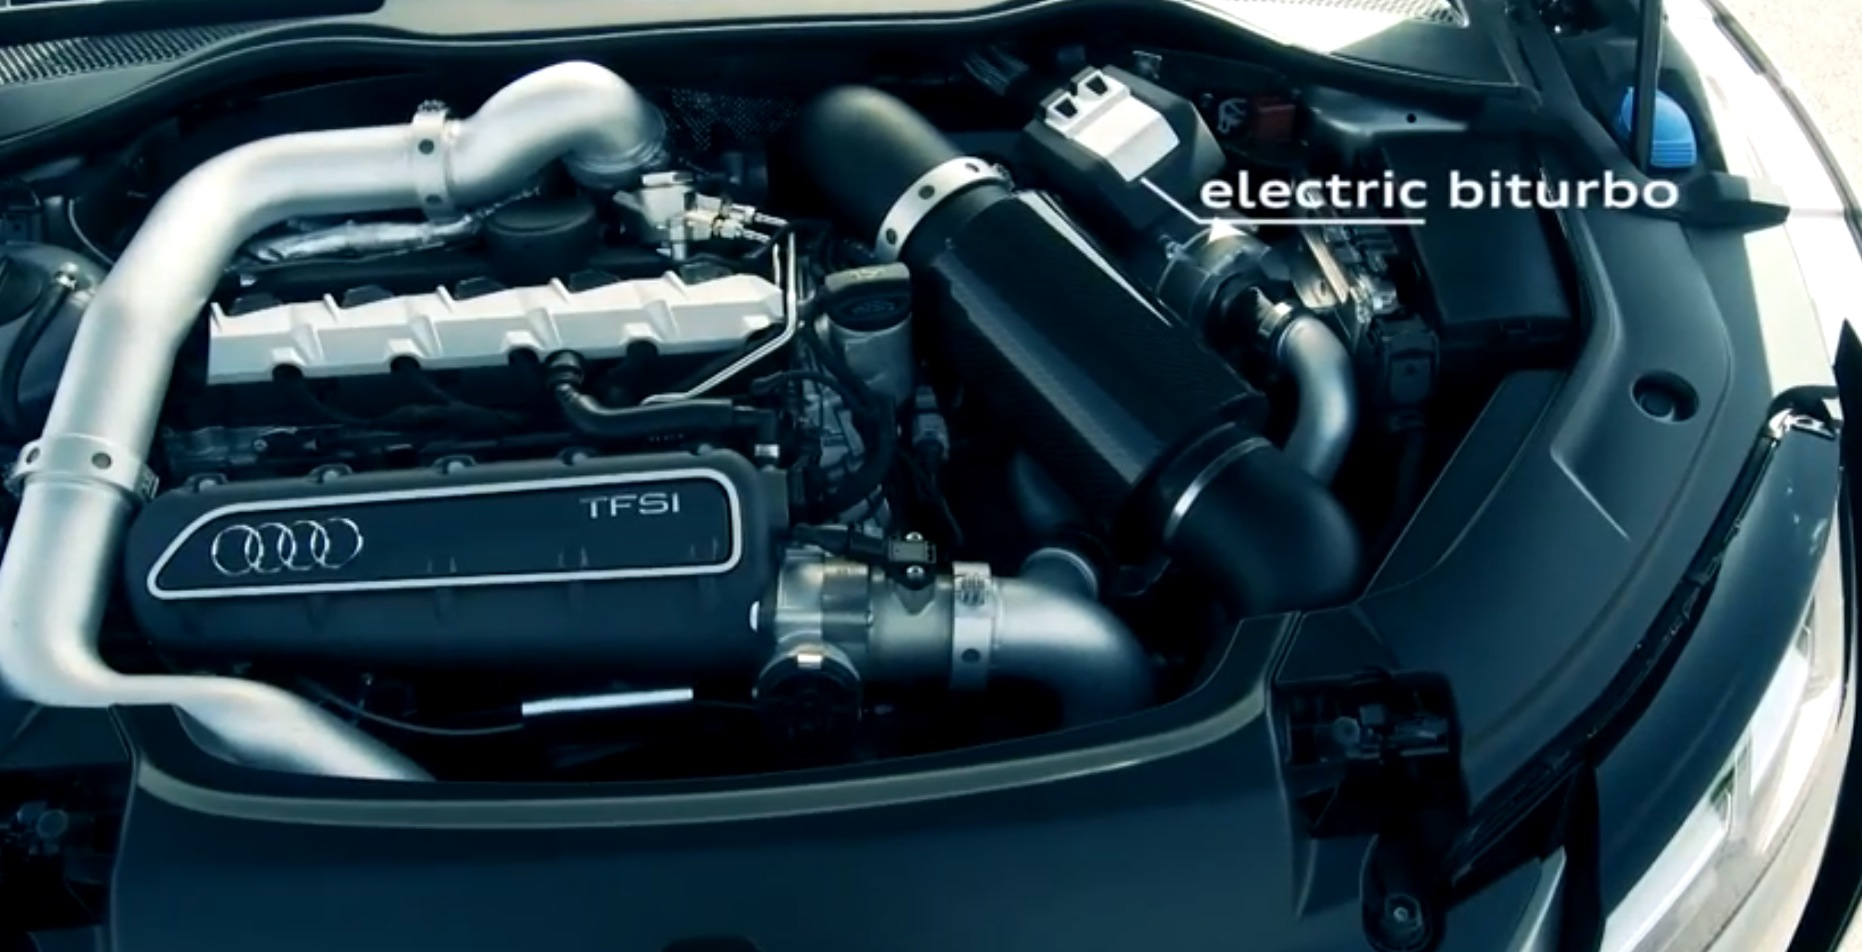 Audi Tt Clubsport 25 Liter Tfsi With Electric Turbo Revealed In